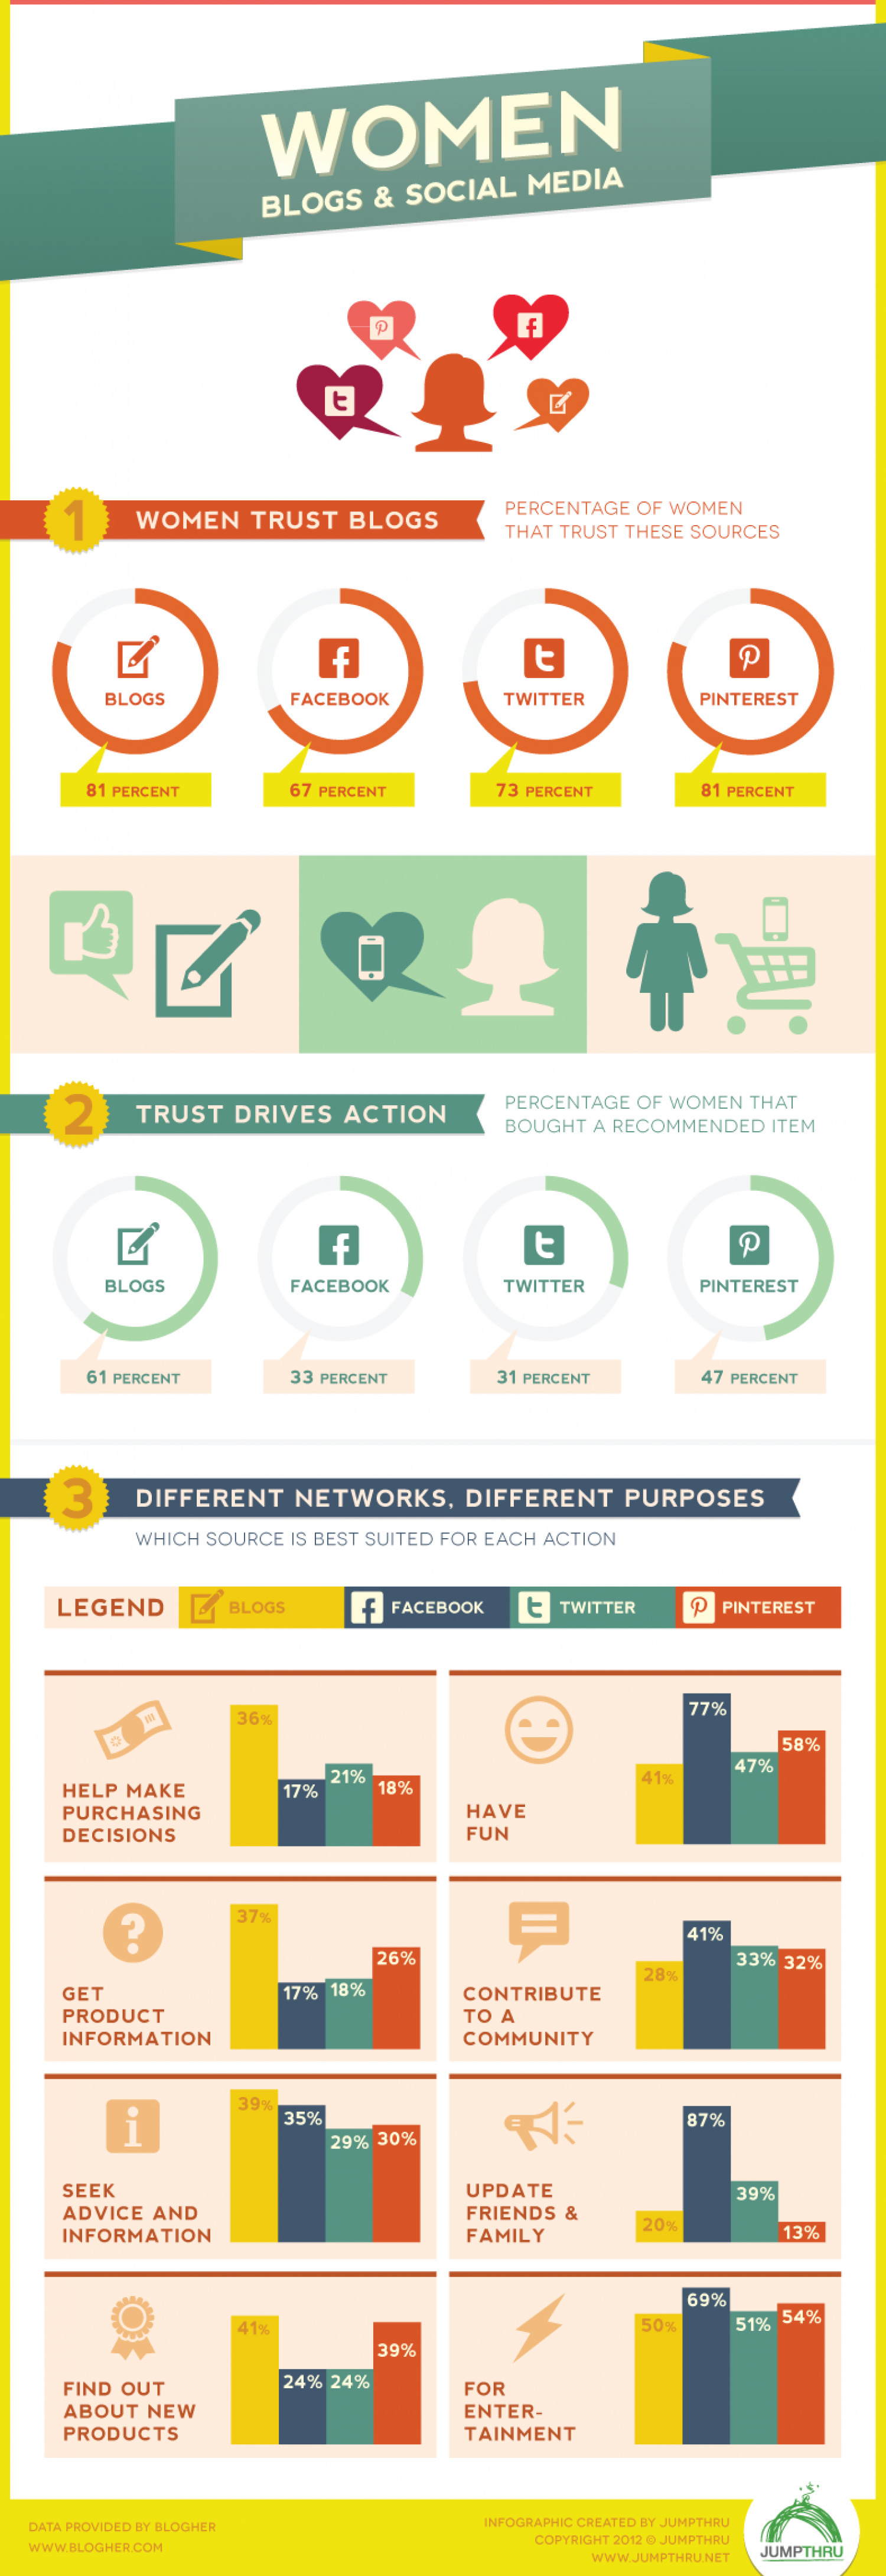 Women, Blogs & Social Media  Infographic